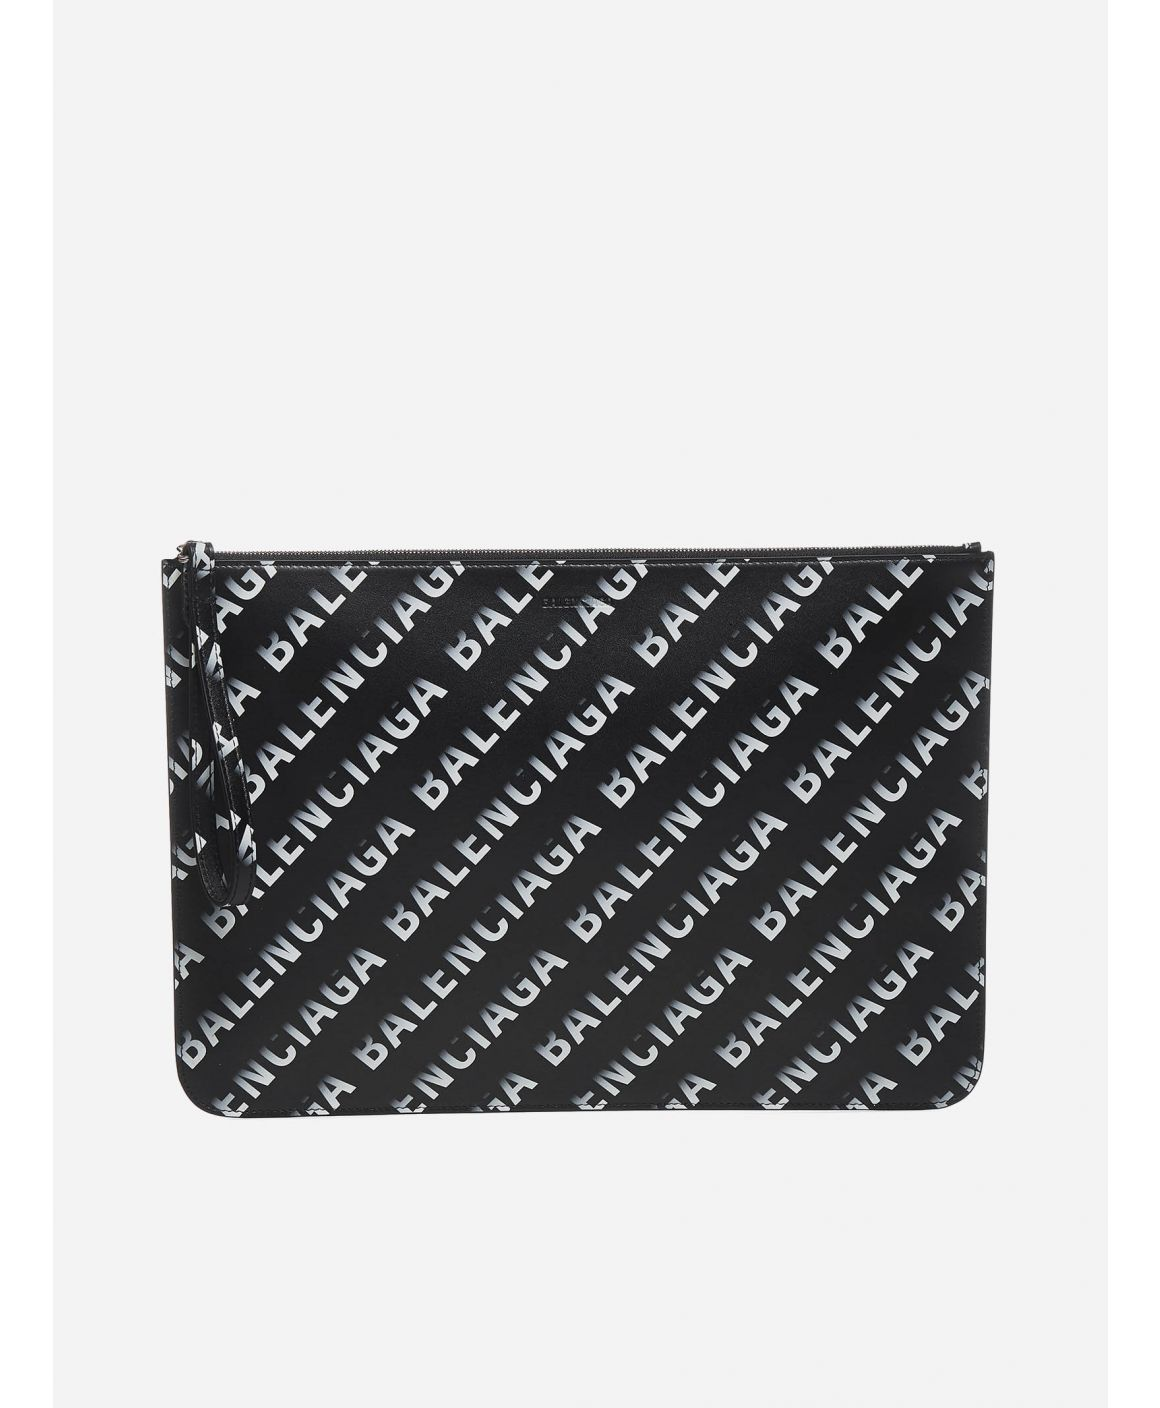 Cash Large all-over logo leather pouch